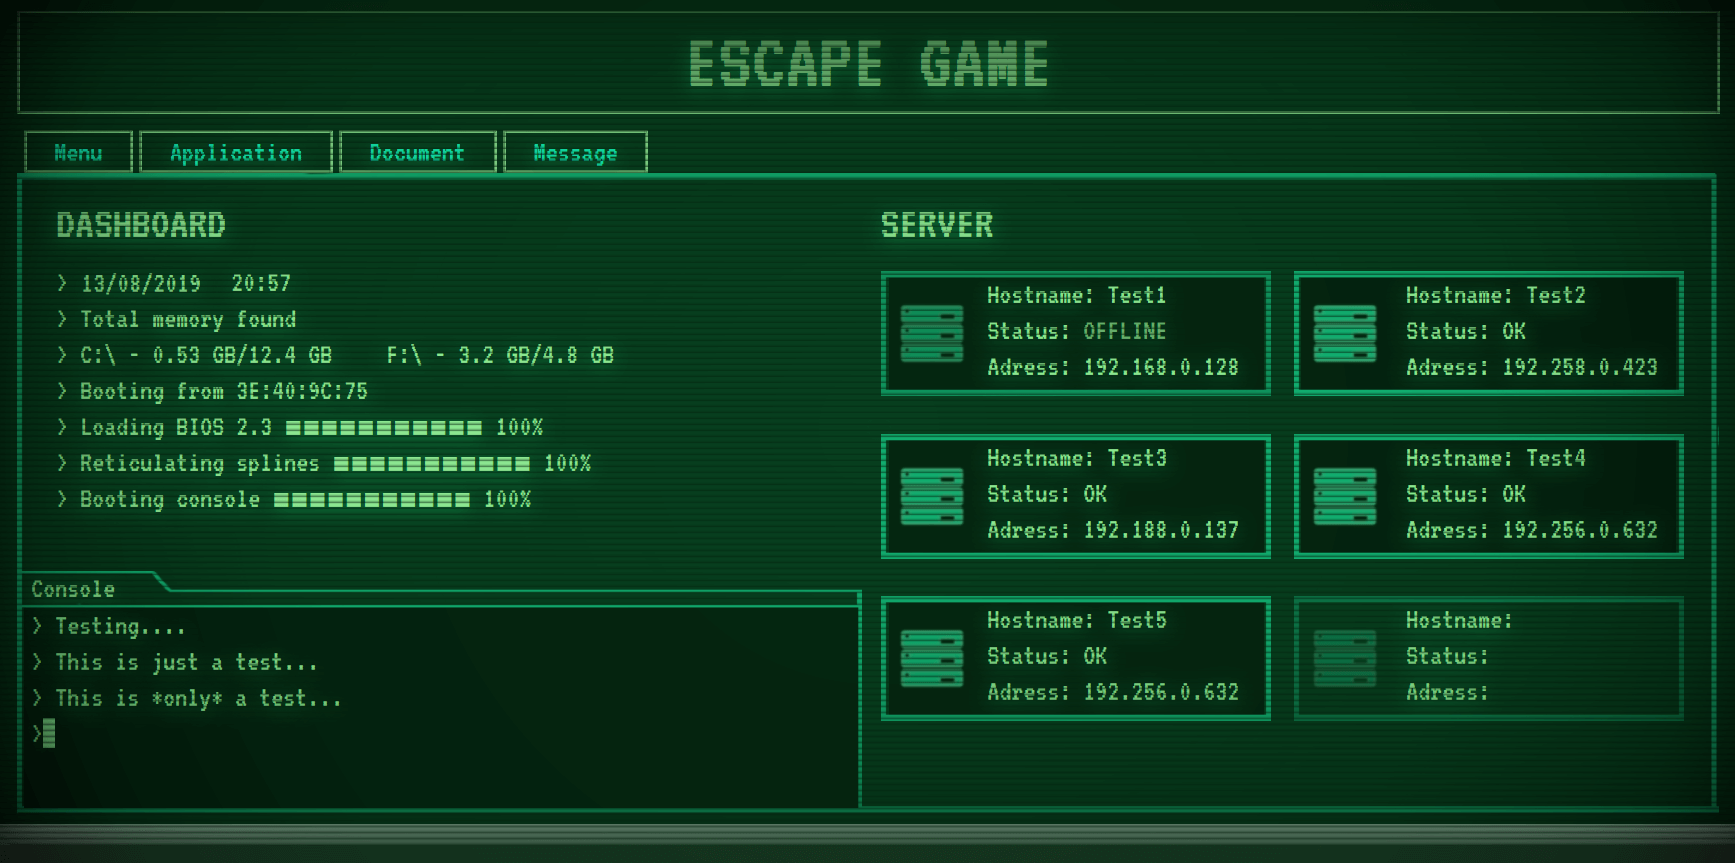 image écran Escape Game